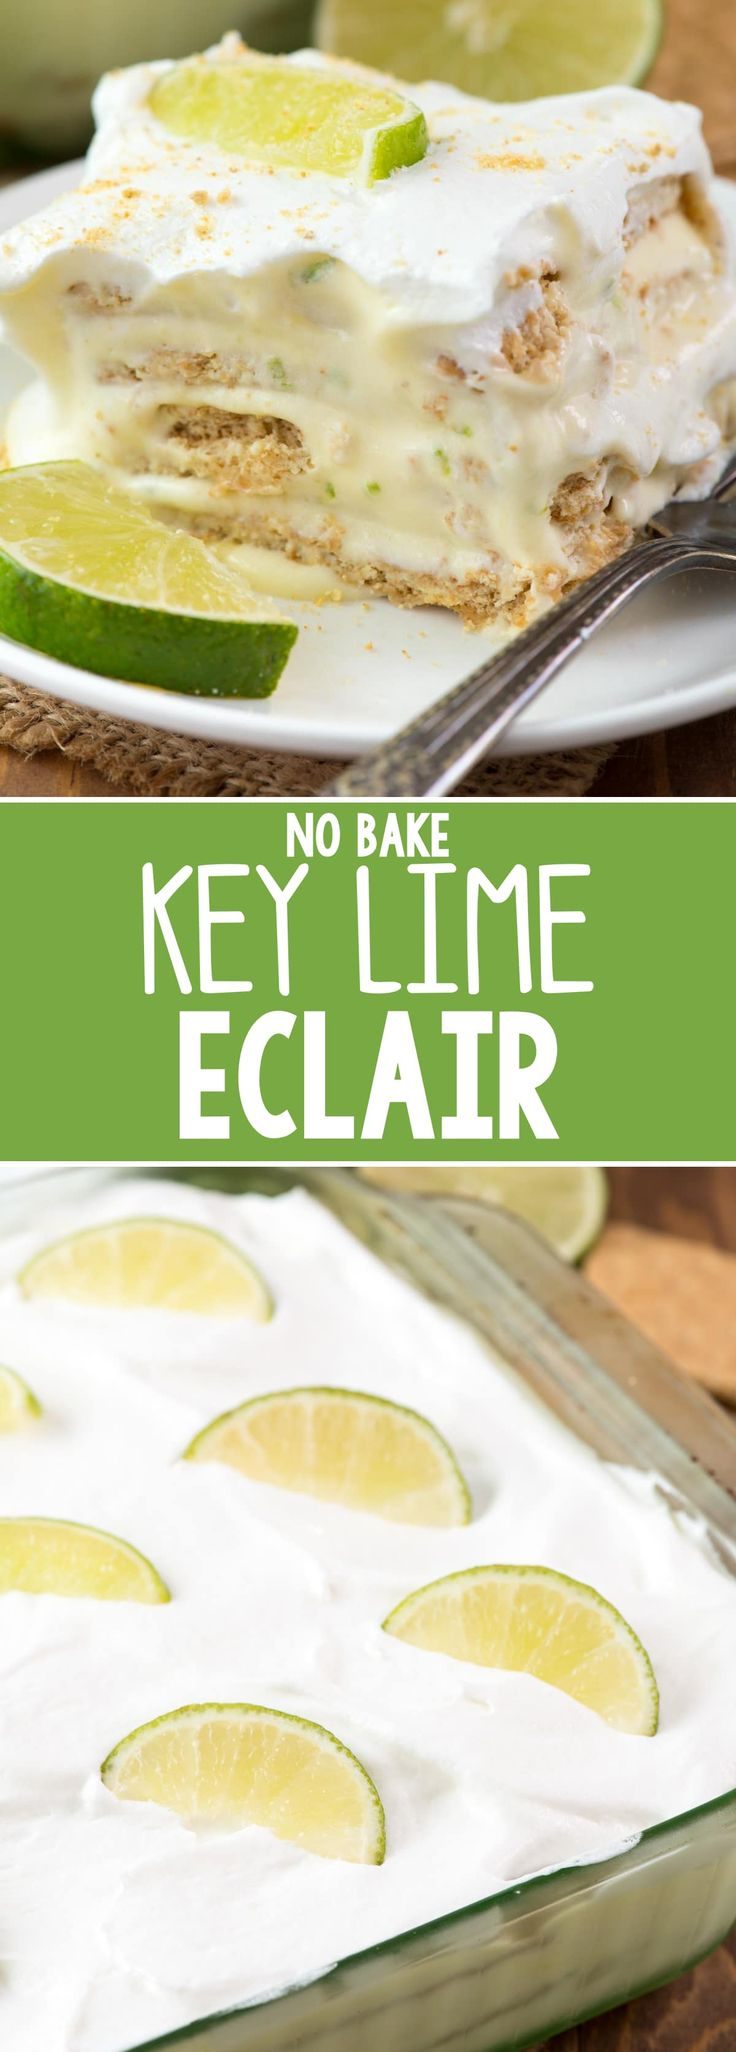 No Bake Key Lime Eclair - this easy no bake recipe is like key lime pie in the form of an easy eclair! It really does taste like an eclair recipe but without all the work and all the key lime flavor.